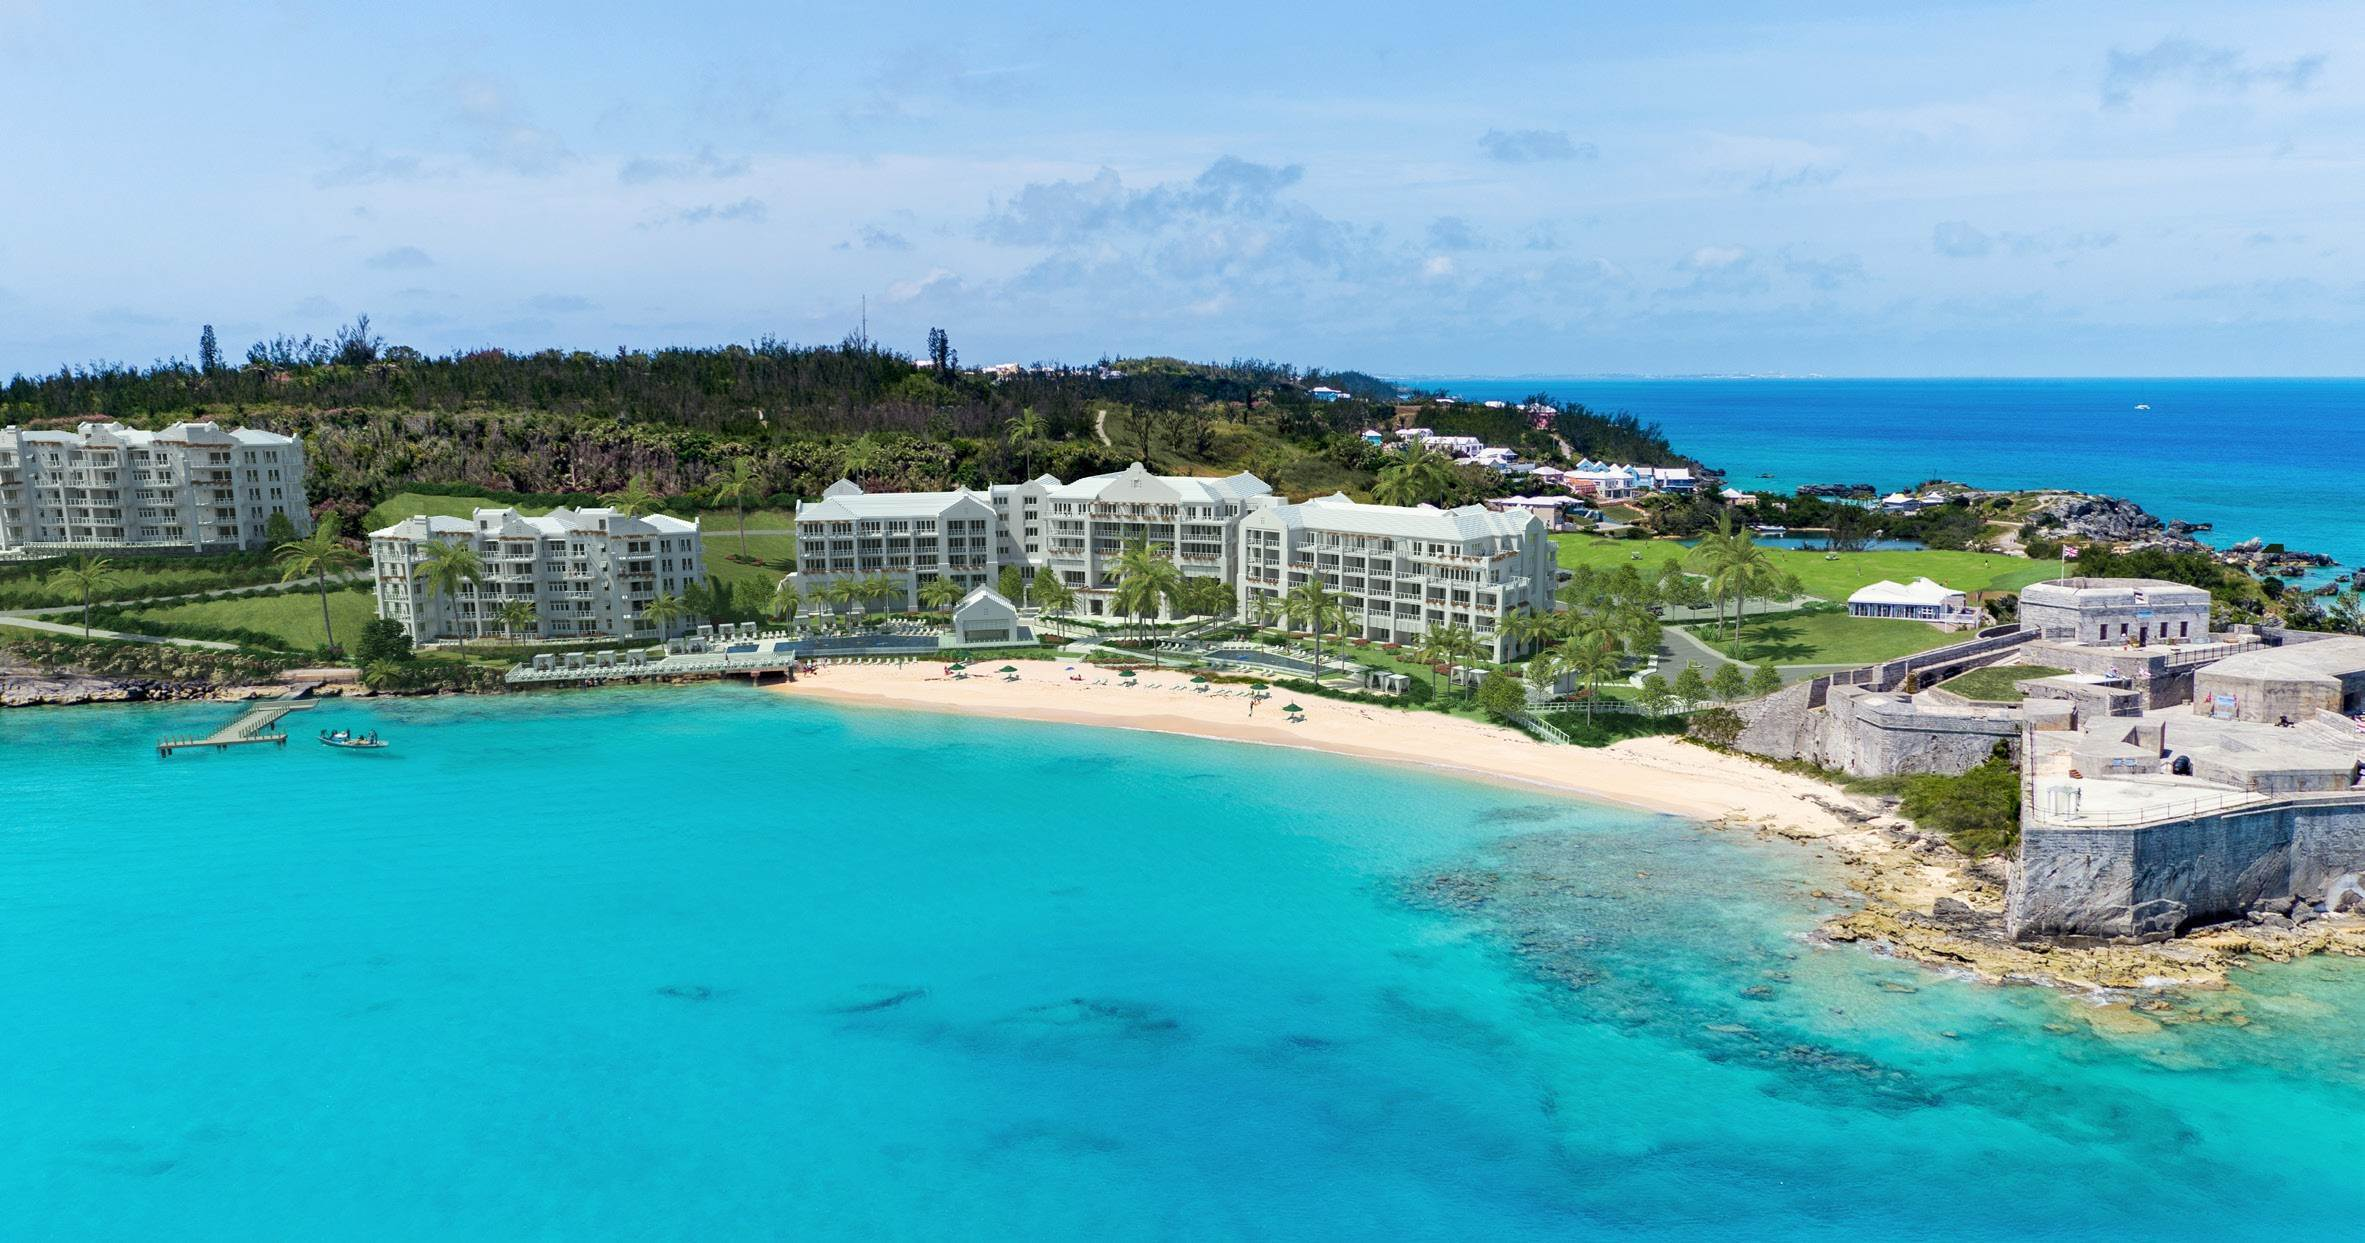 4. Condo / Townhouse / Flat for Sale at St. Regis Bermuda Residences - Gates Bay PHB St. Catherine's Beach St Georges Parish, GE03 Bermuda